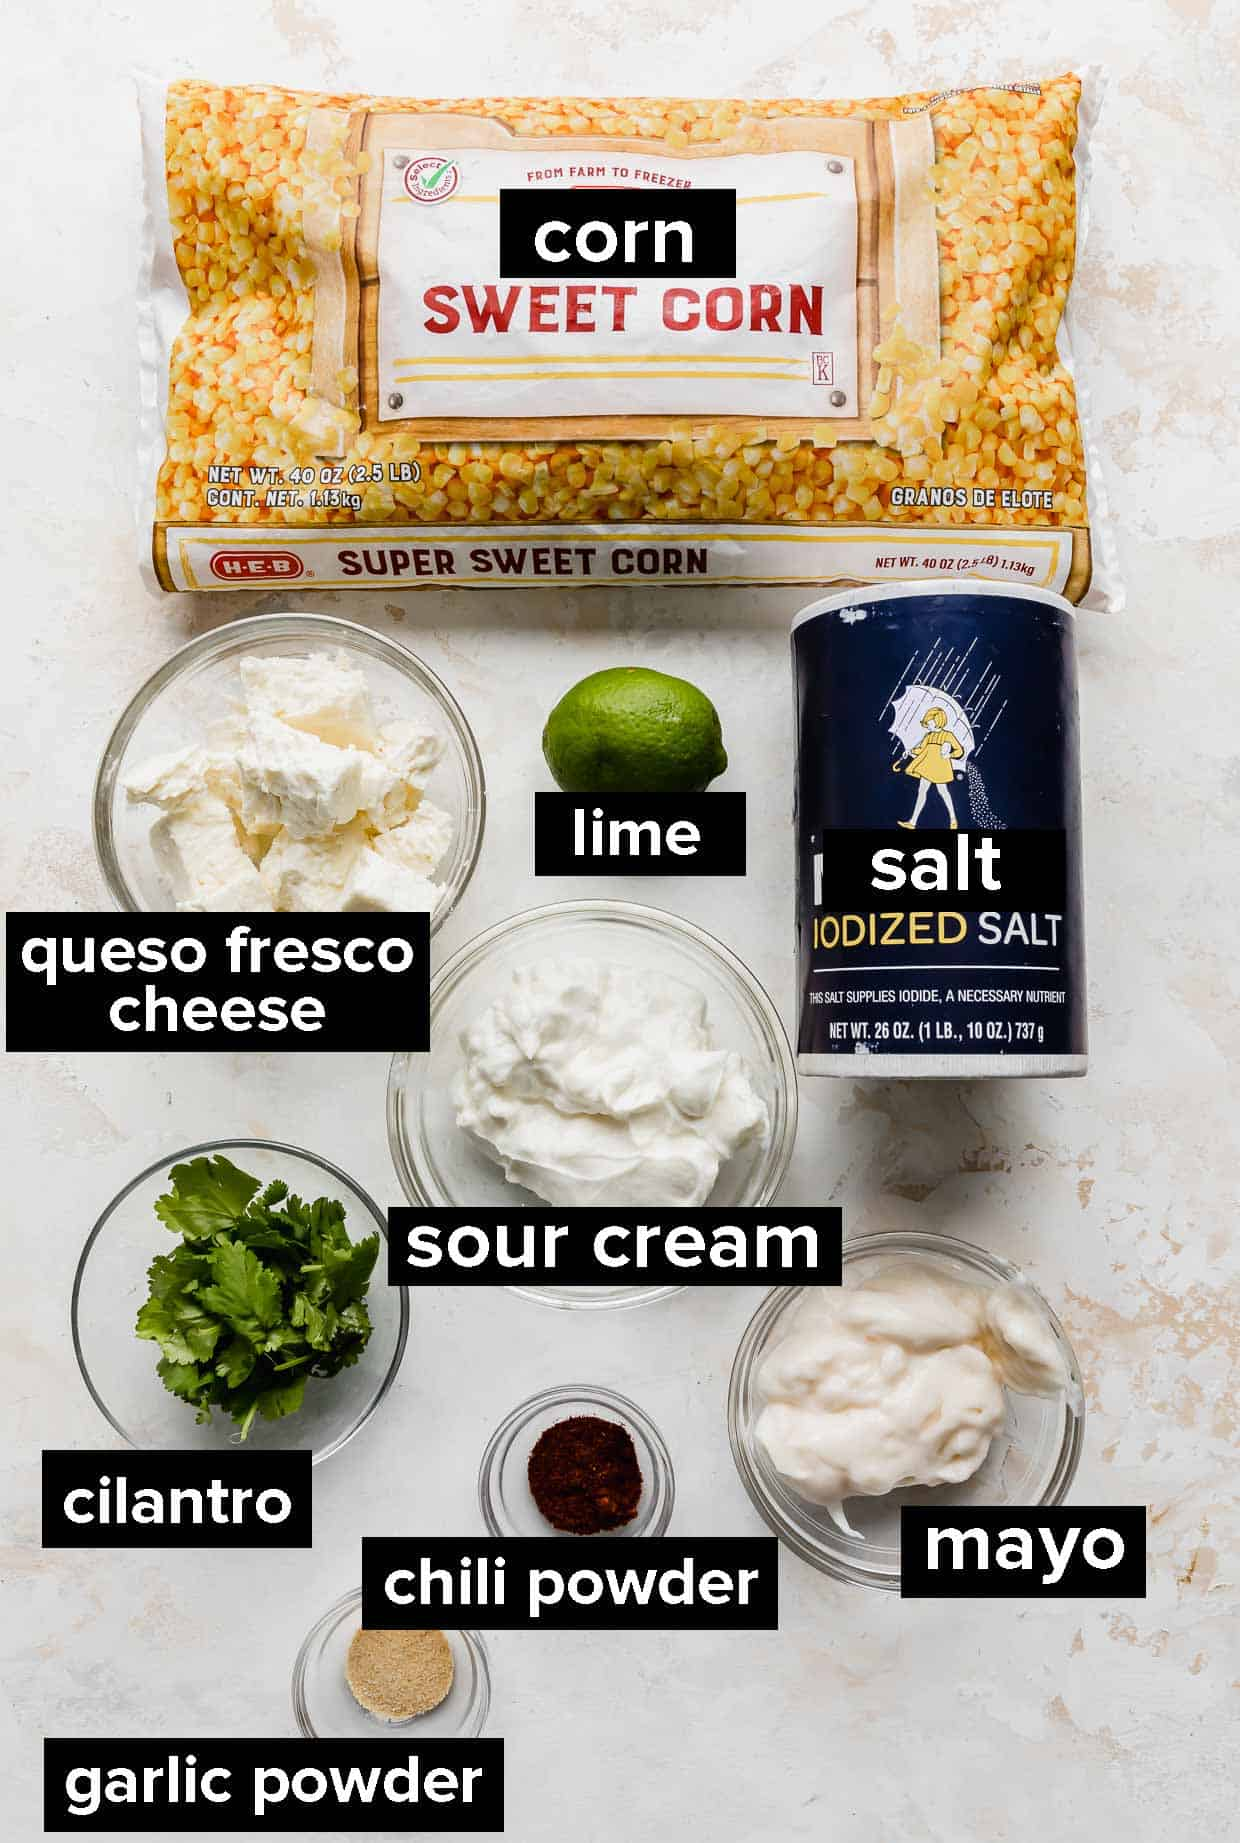 Ingredients used to make Mexican street corn casserole.